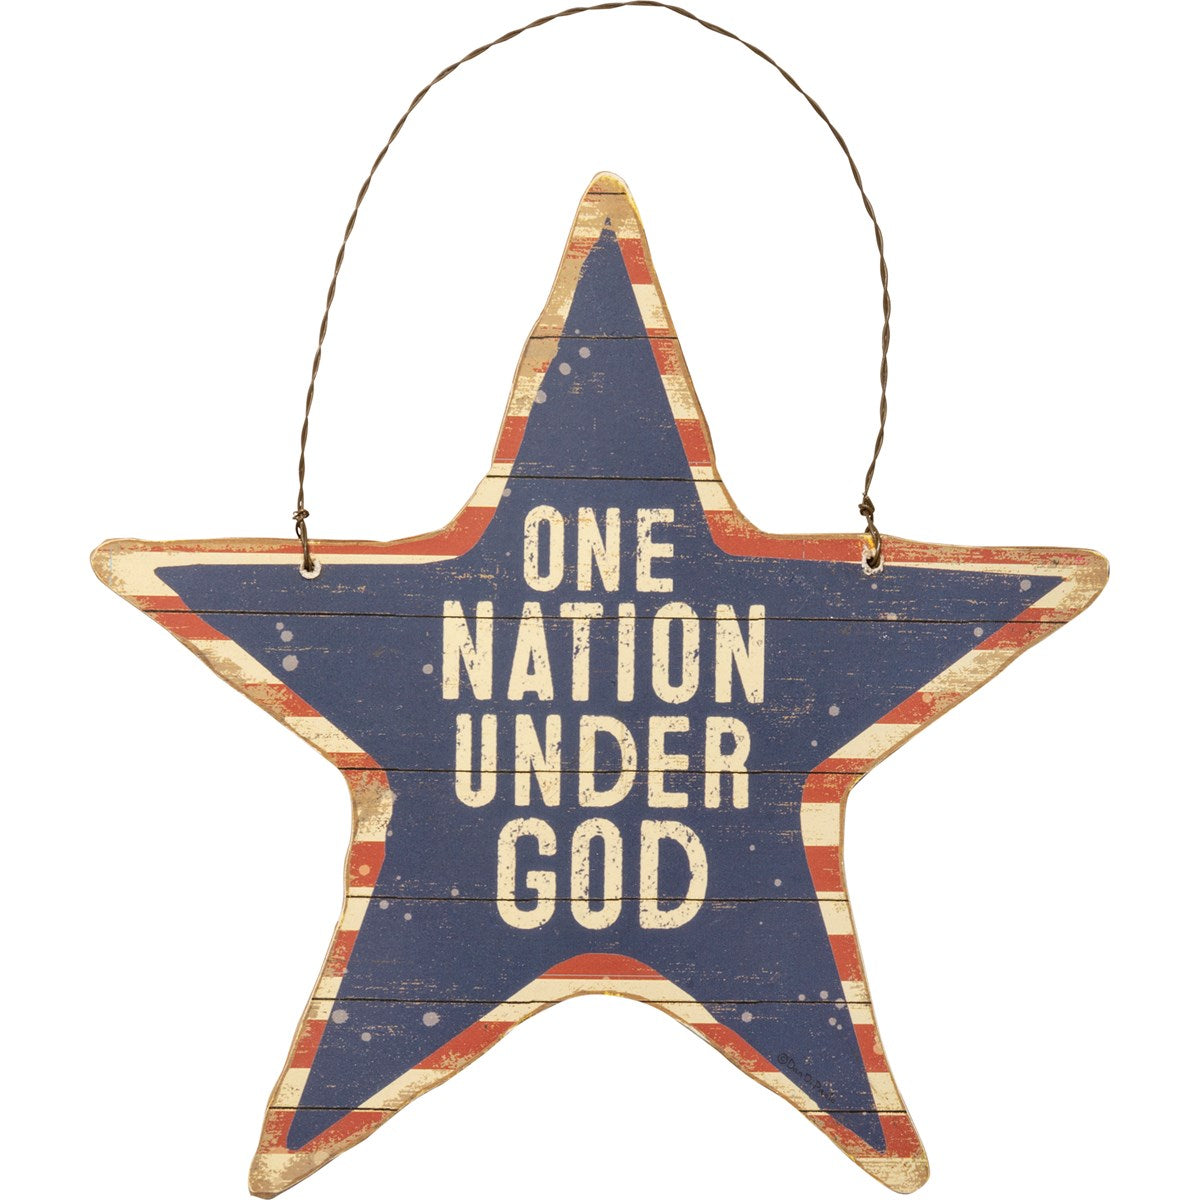 Hanging Decor - One Nation Under God